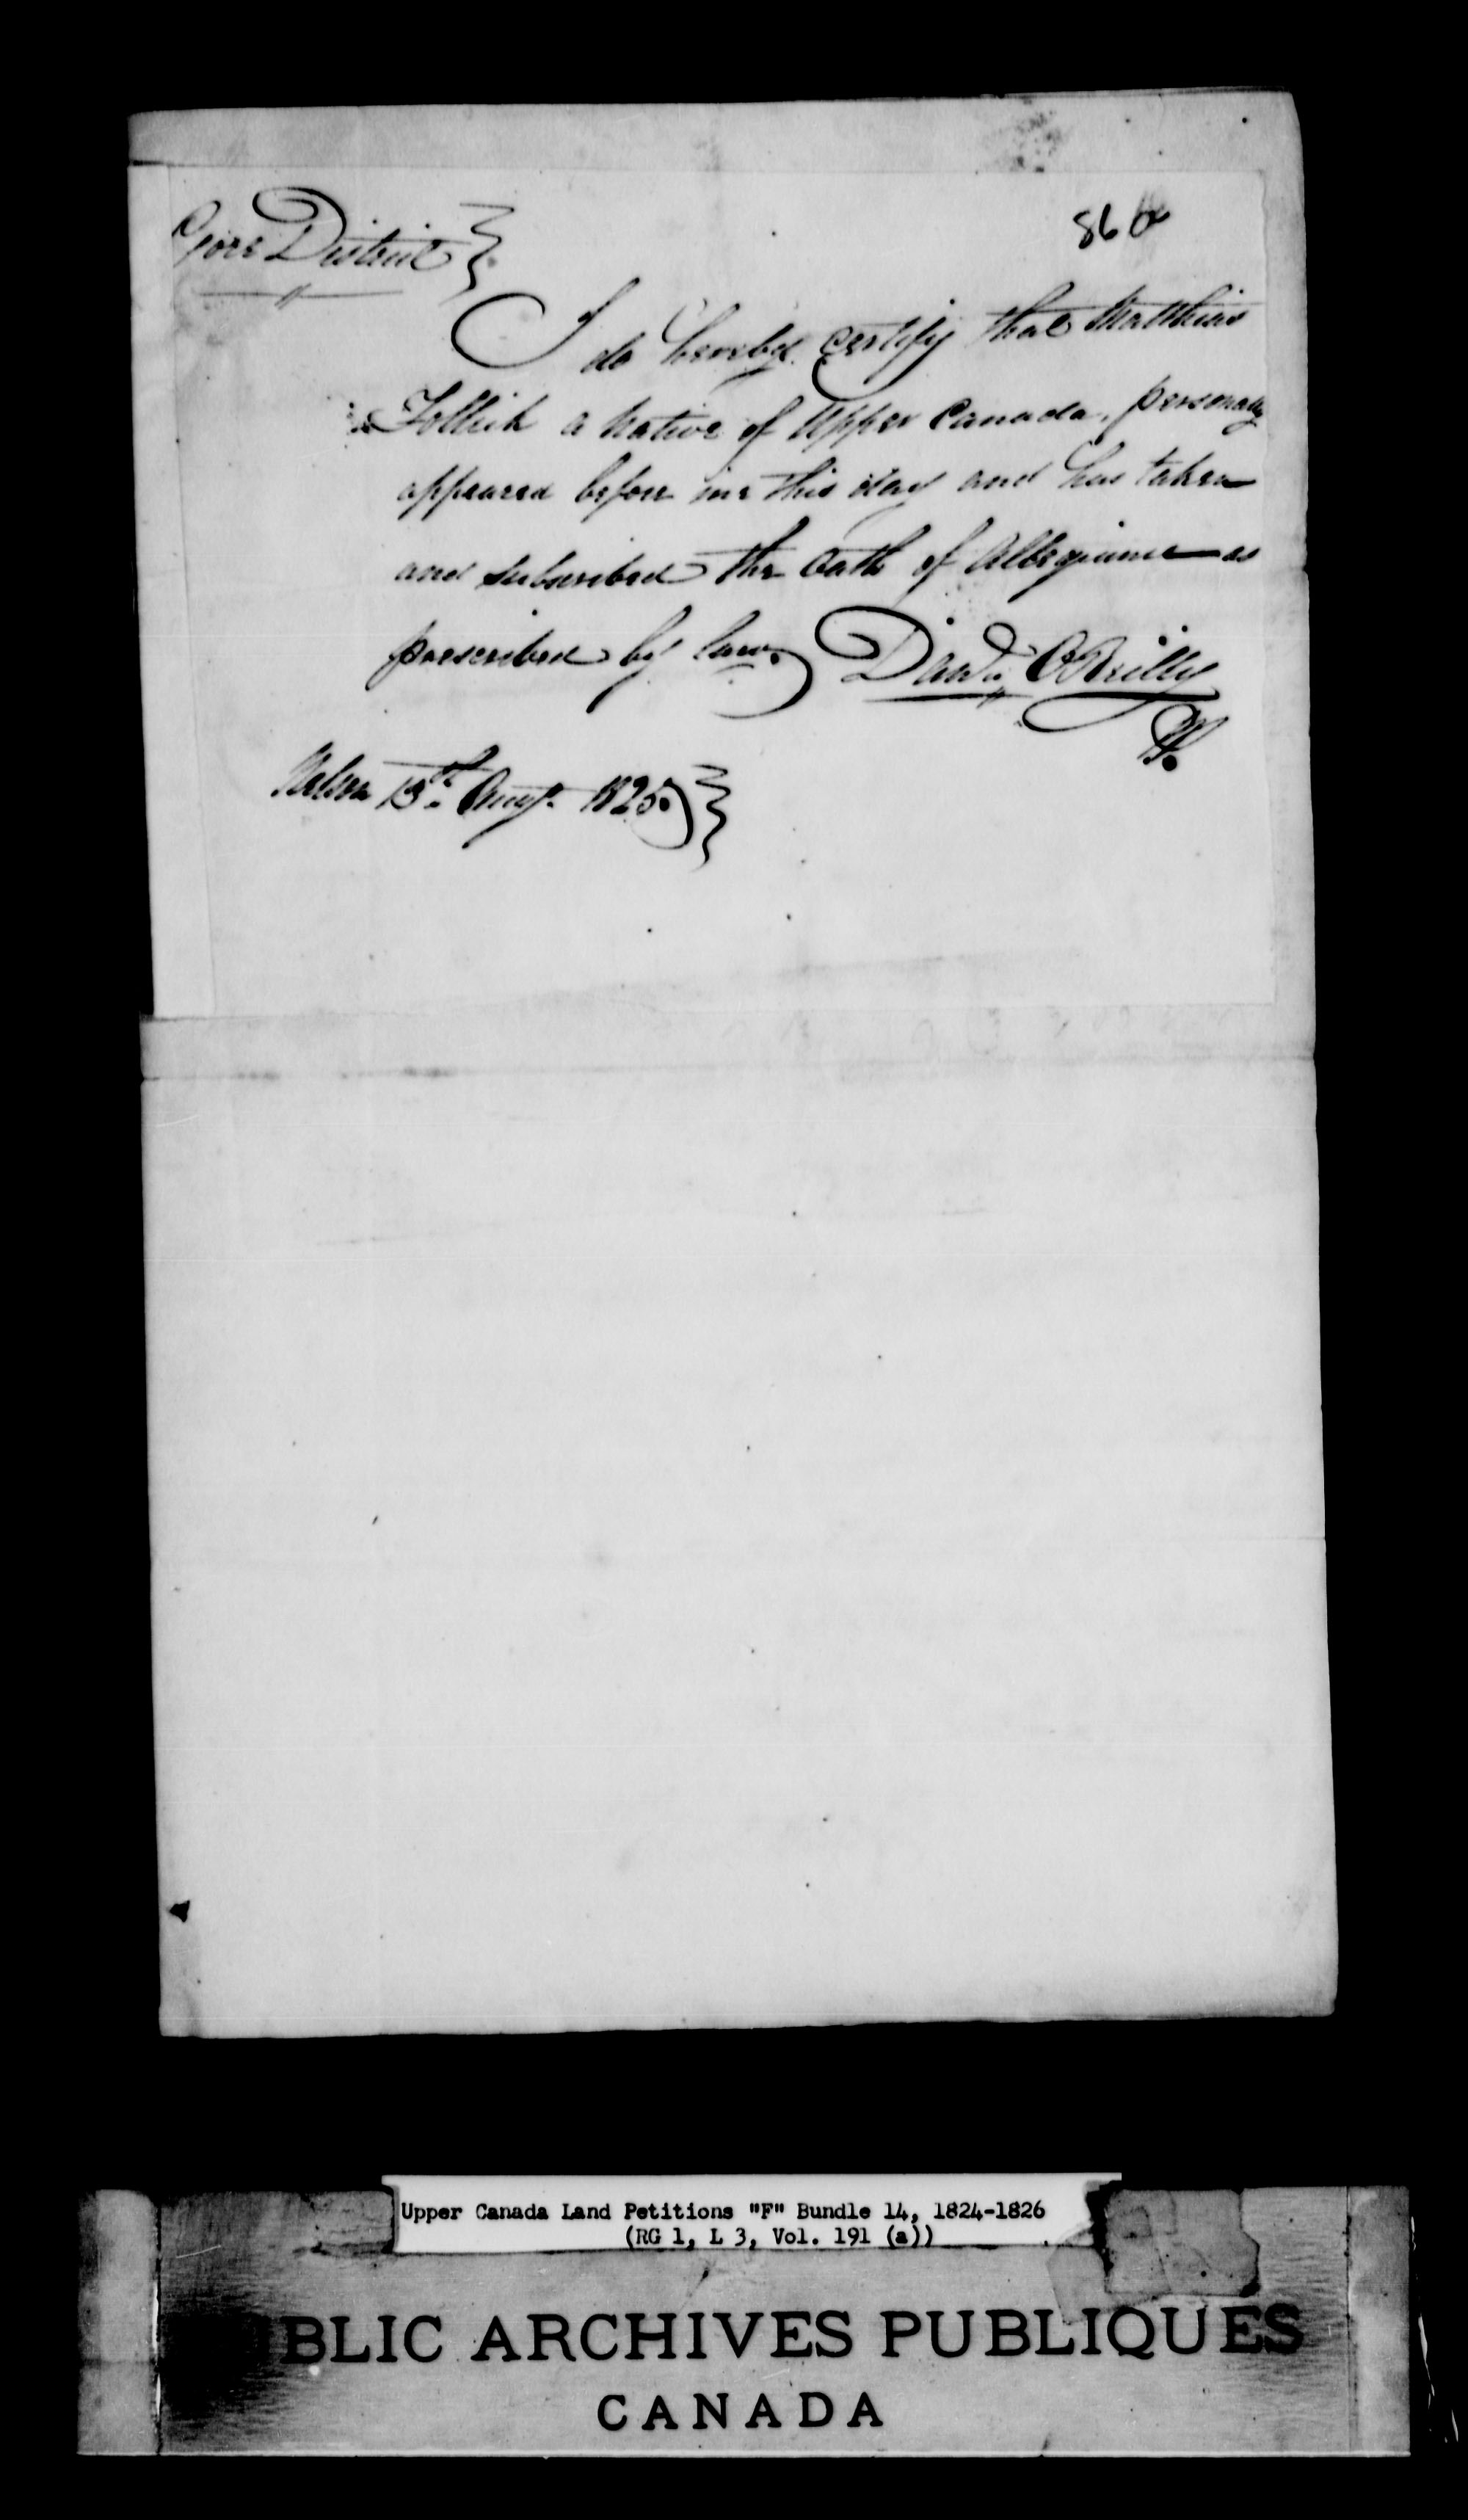 Title: Upper Canada Land Petitions (1763-1865) - Mikan Number: 205131 - Microform: c-1898